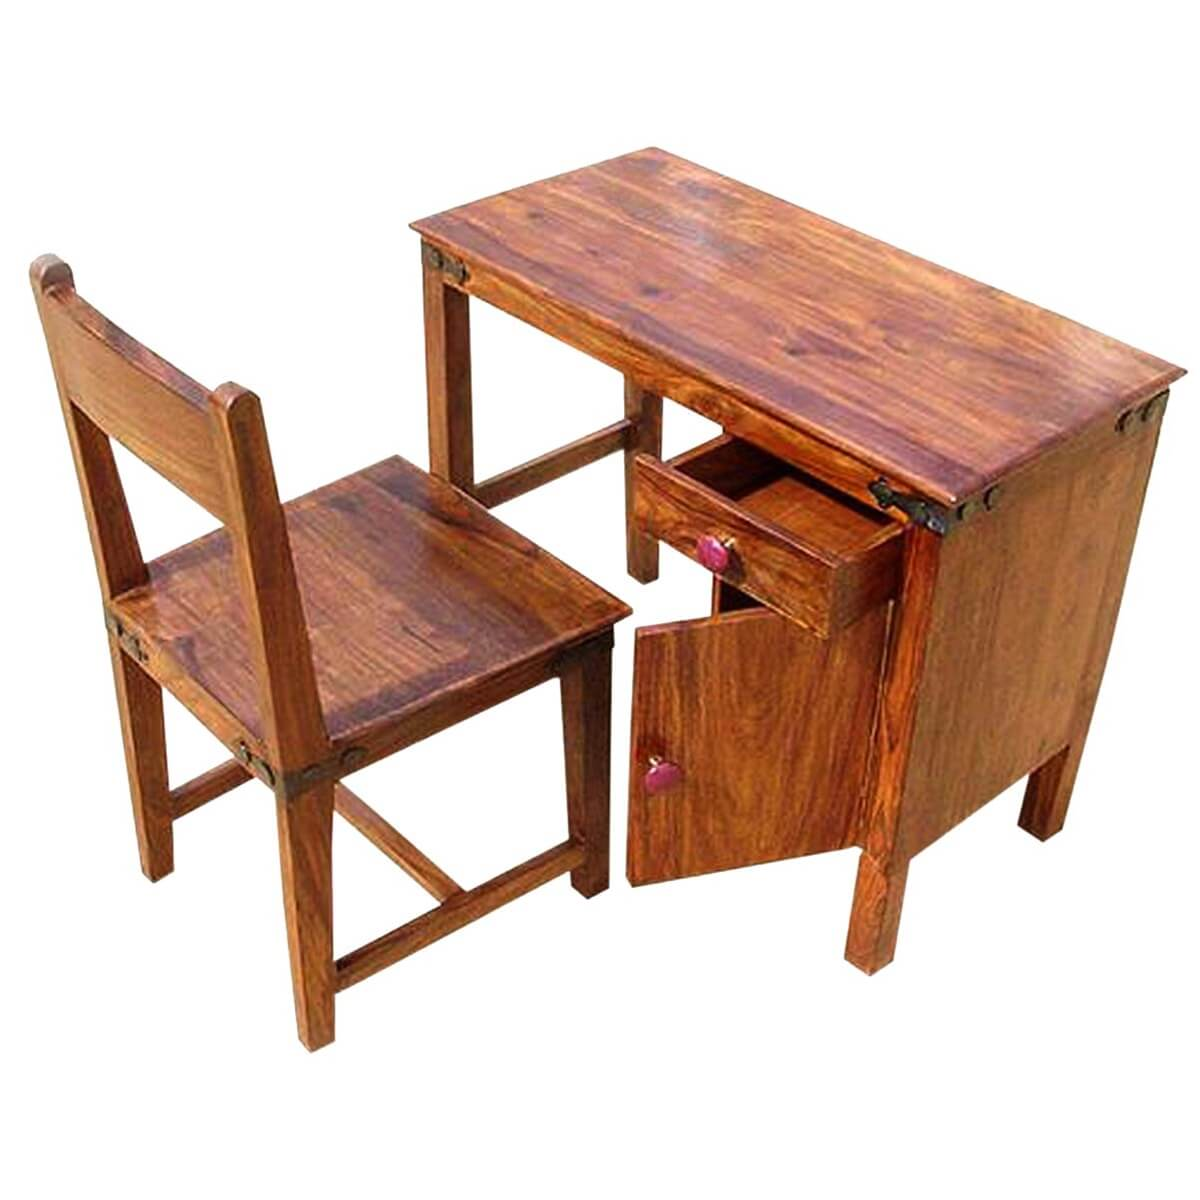 Student Desk And Chair Set Solid Wood Student Writing Study Table Desk With Chair Set